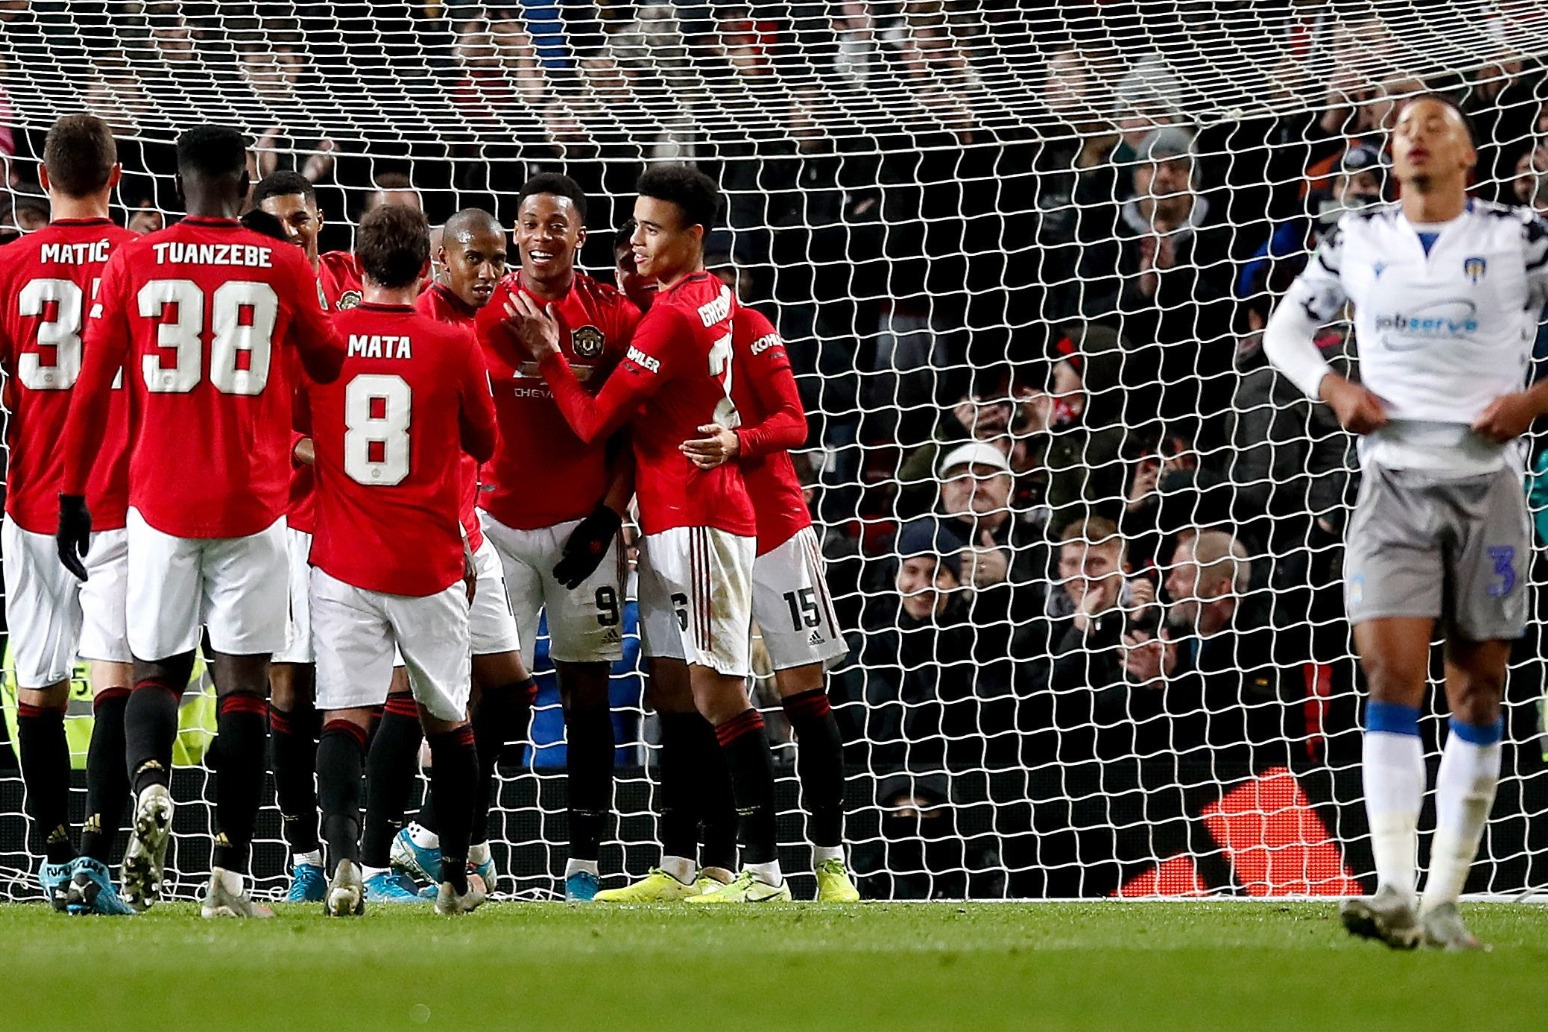 SOLSKJAER SAYS UNITED NEED TO IMPROVE AGAINST CITY